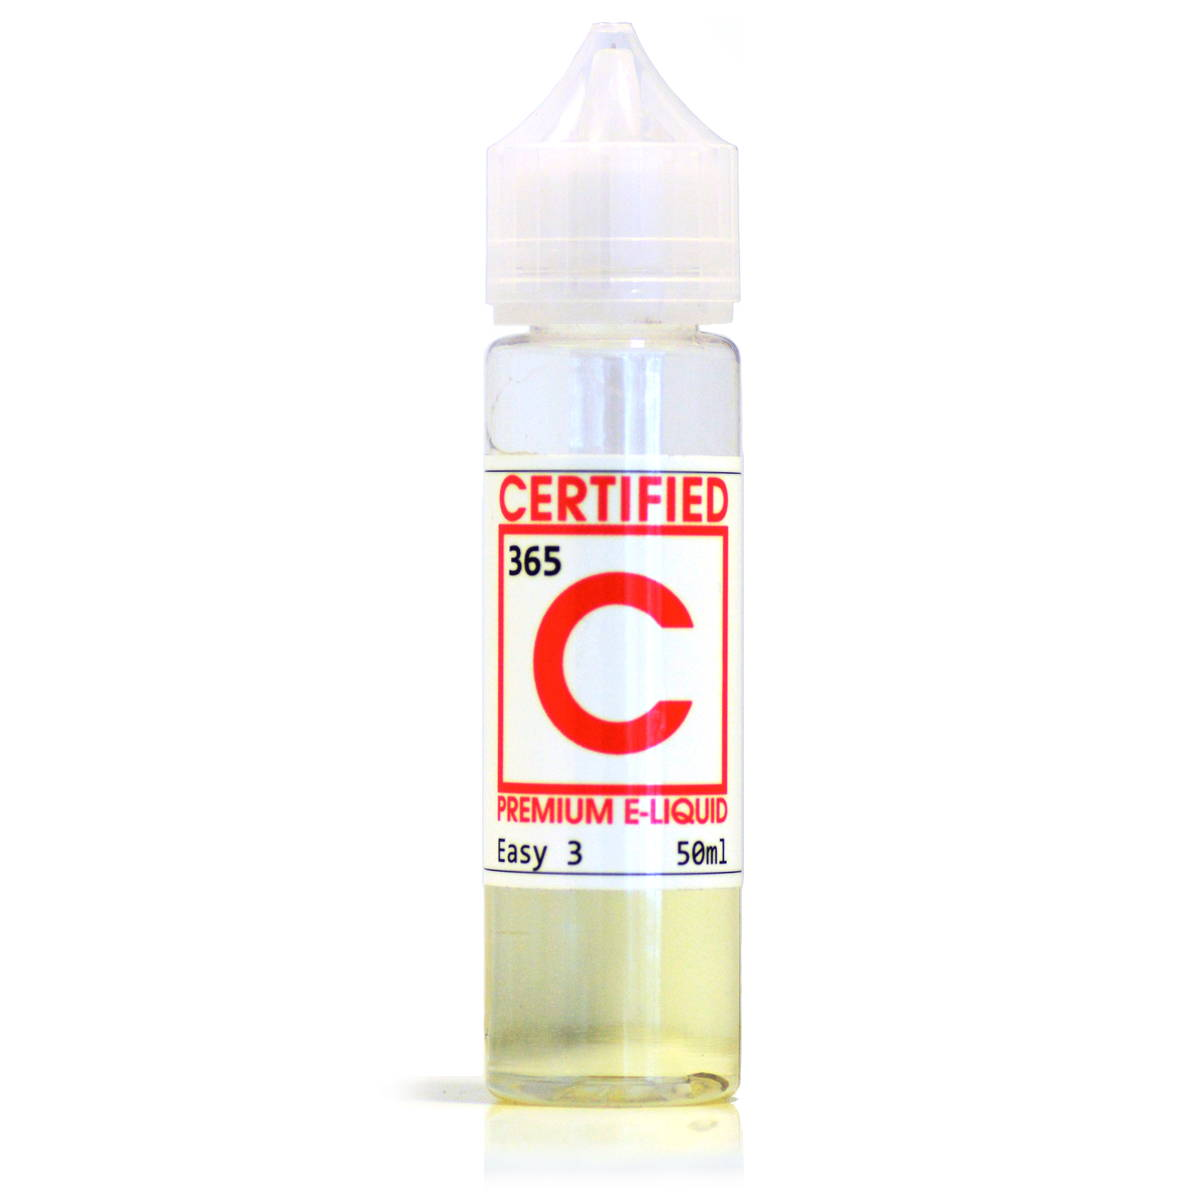 365 vanilla custard E-Liquid by Certified